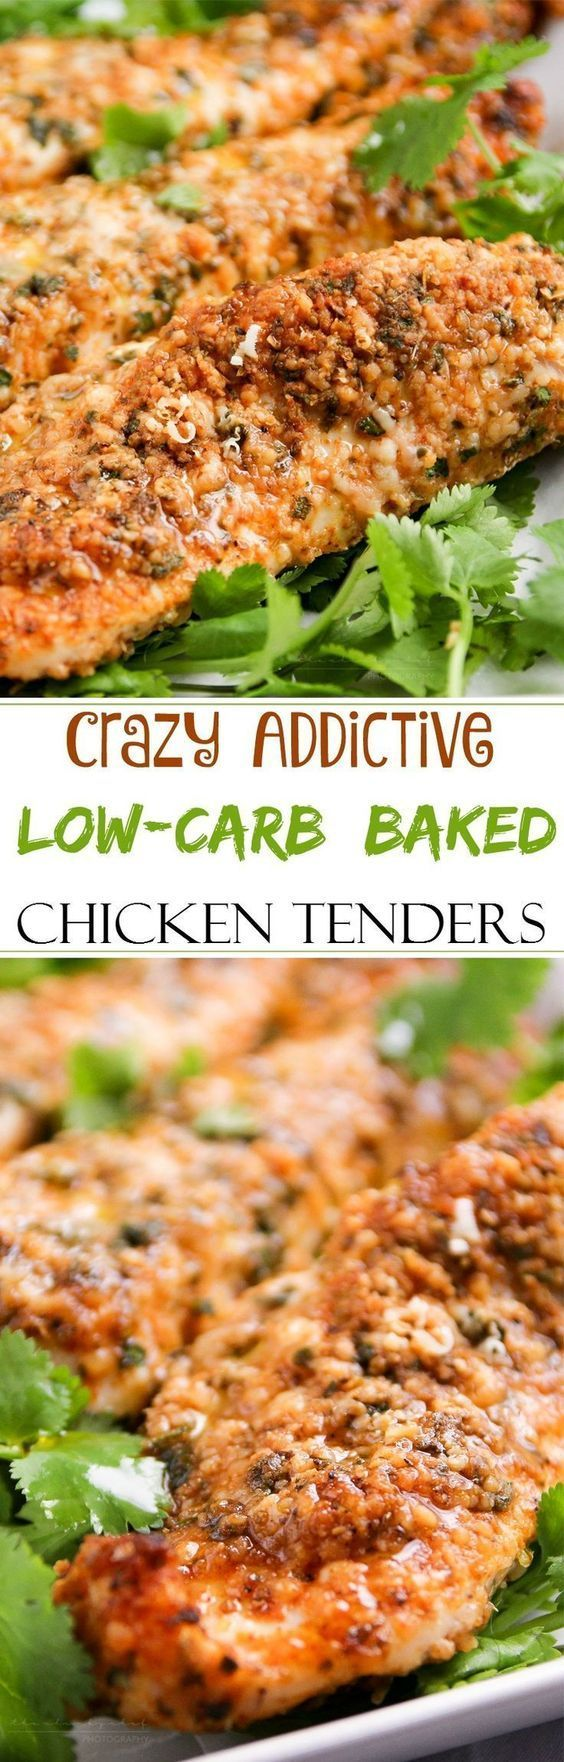 Low Carb Baked Chicken Tenders | These baked chicken tenders are coated in a deliciously savory crust, yet have zero breading, which makes for an awesomely low carb meal! | thechunkychef.com